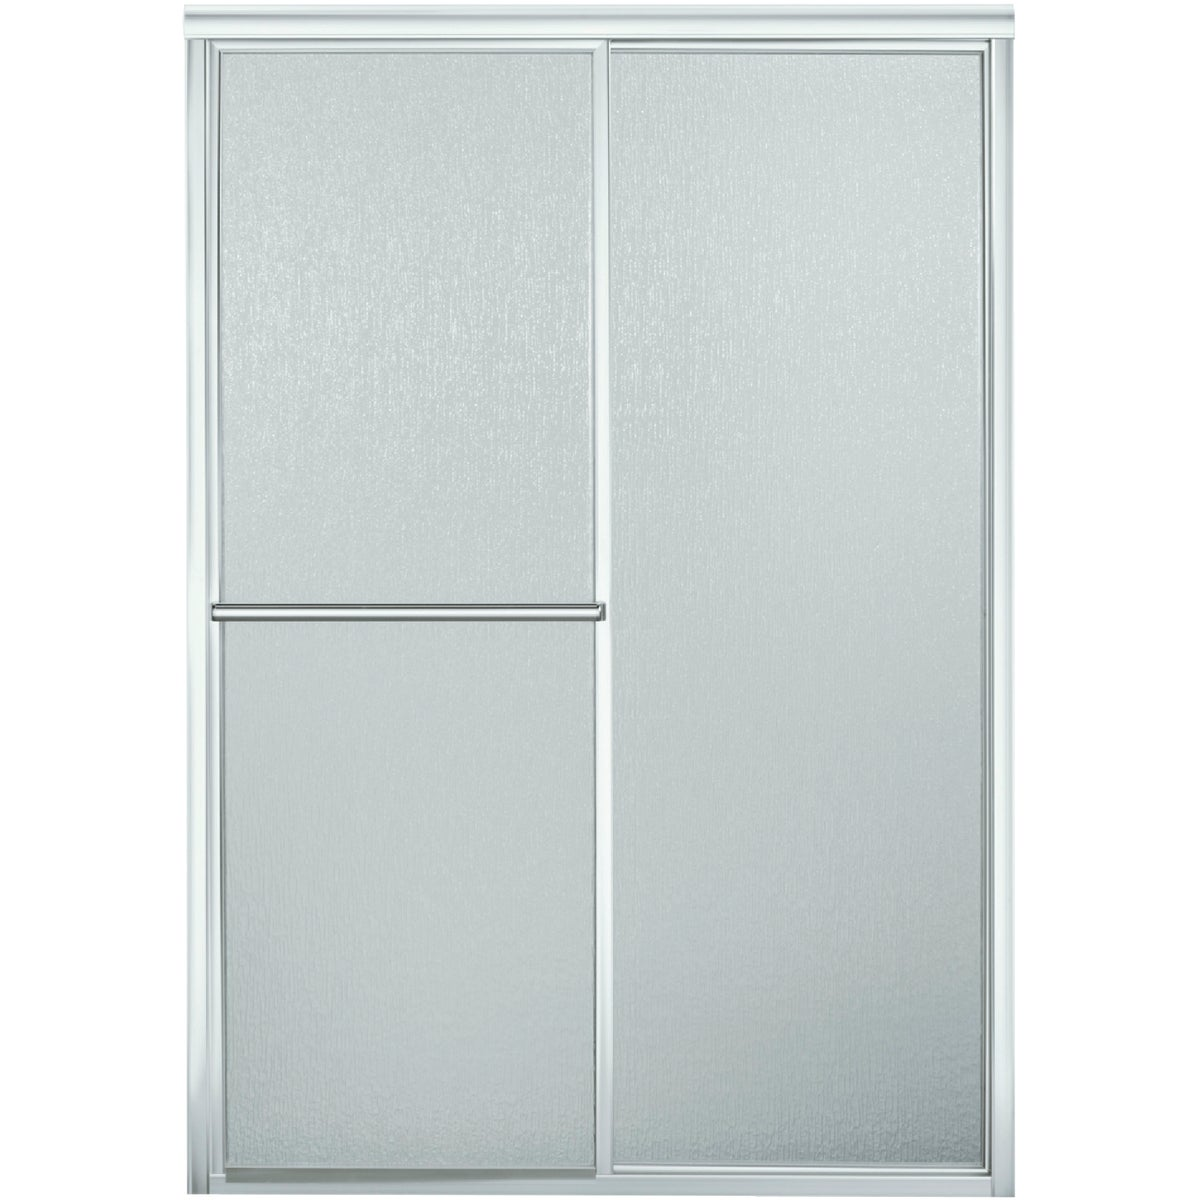 SILVER BY-PASS SHWR DOOR - SP5965-46S-GO6 by Sterling Doors